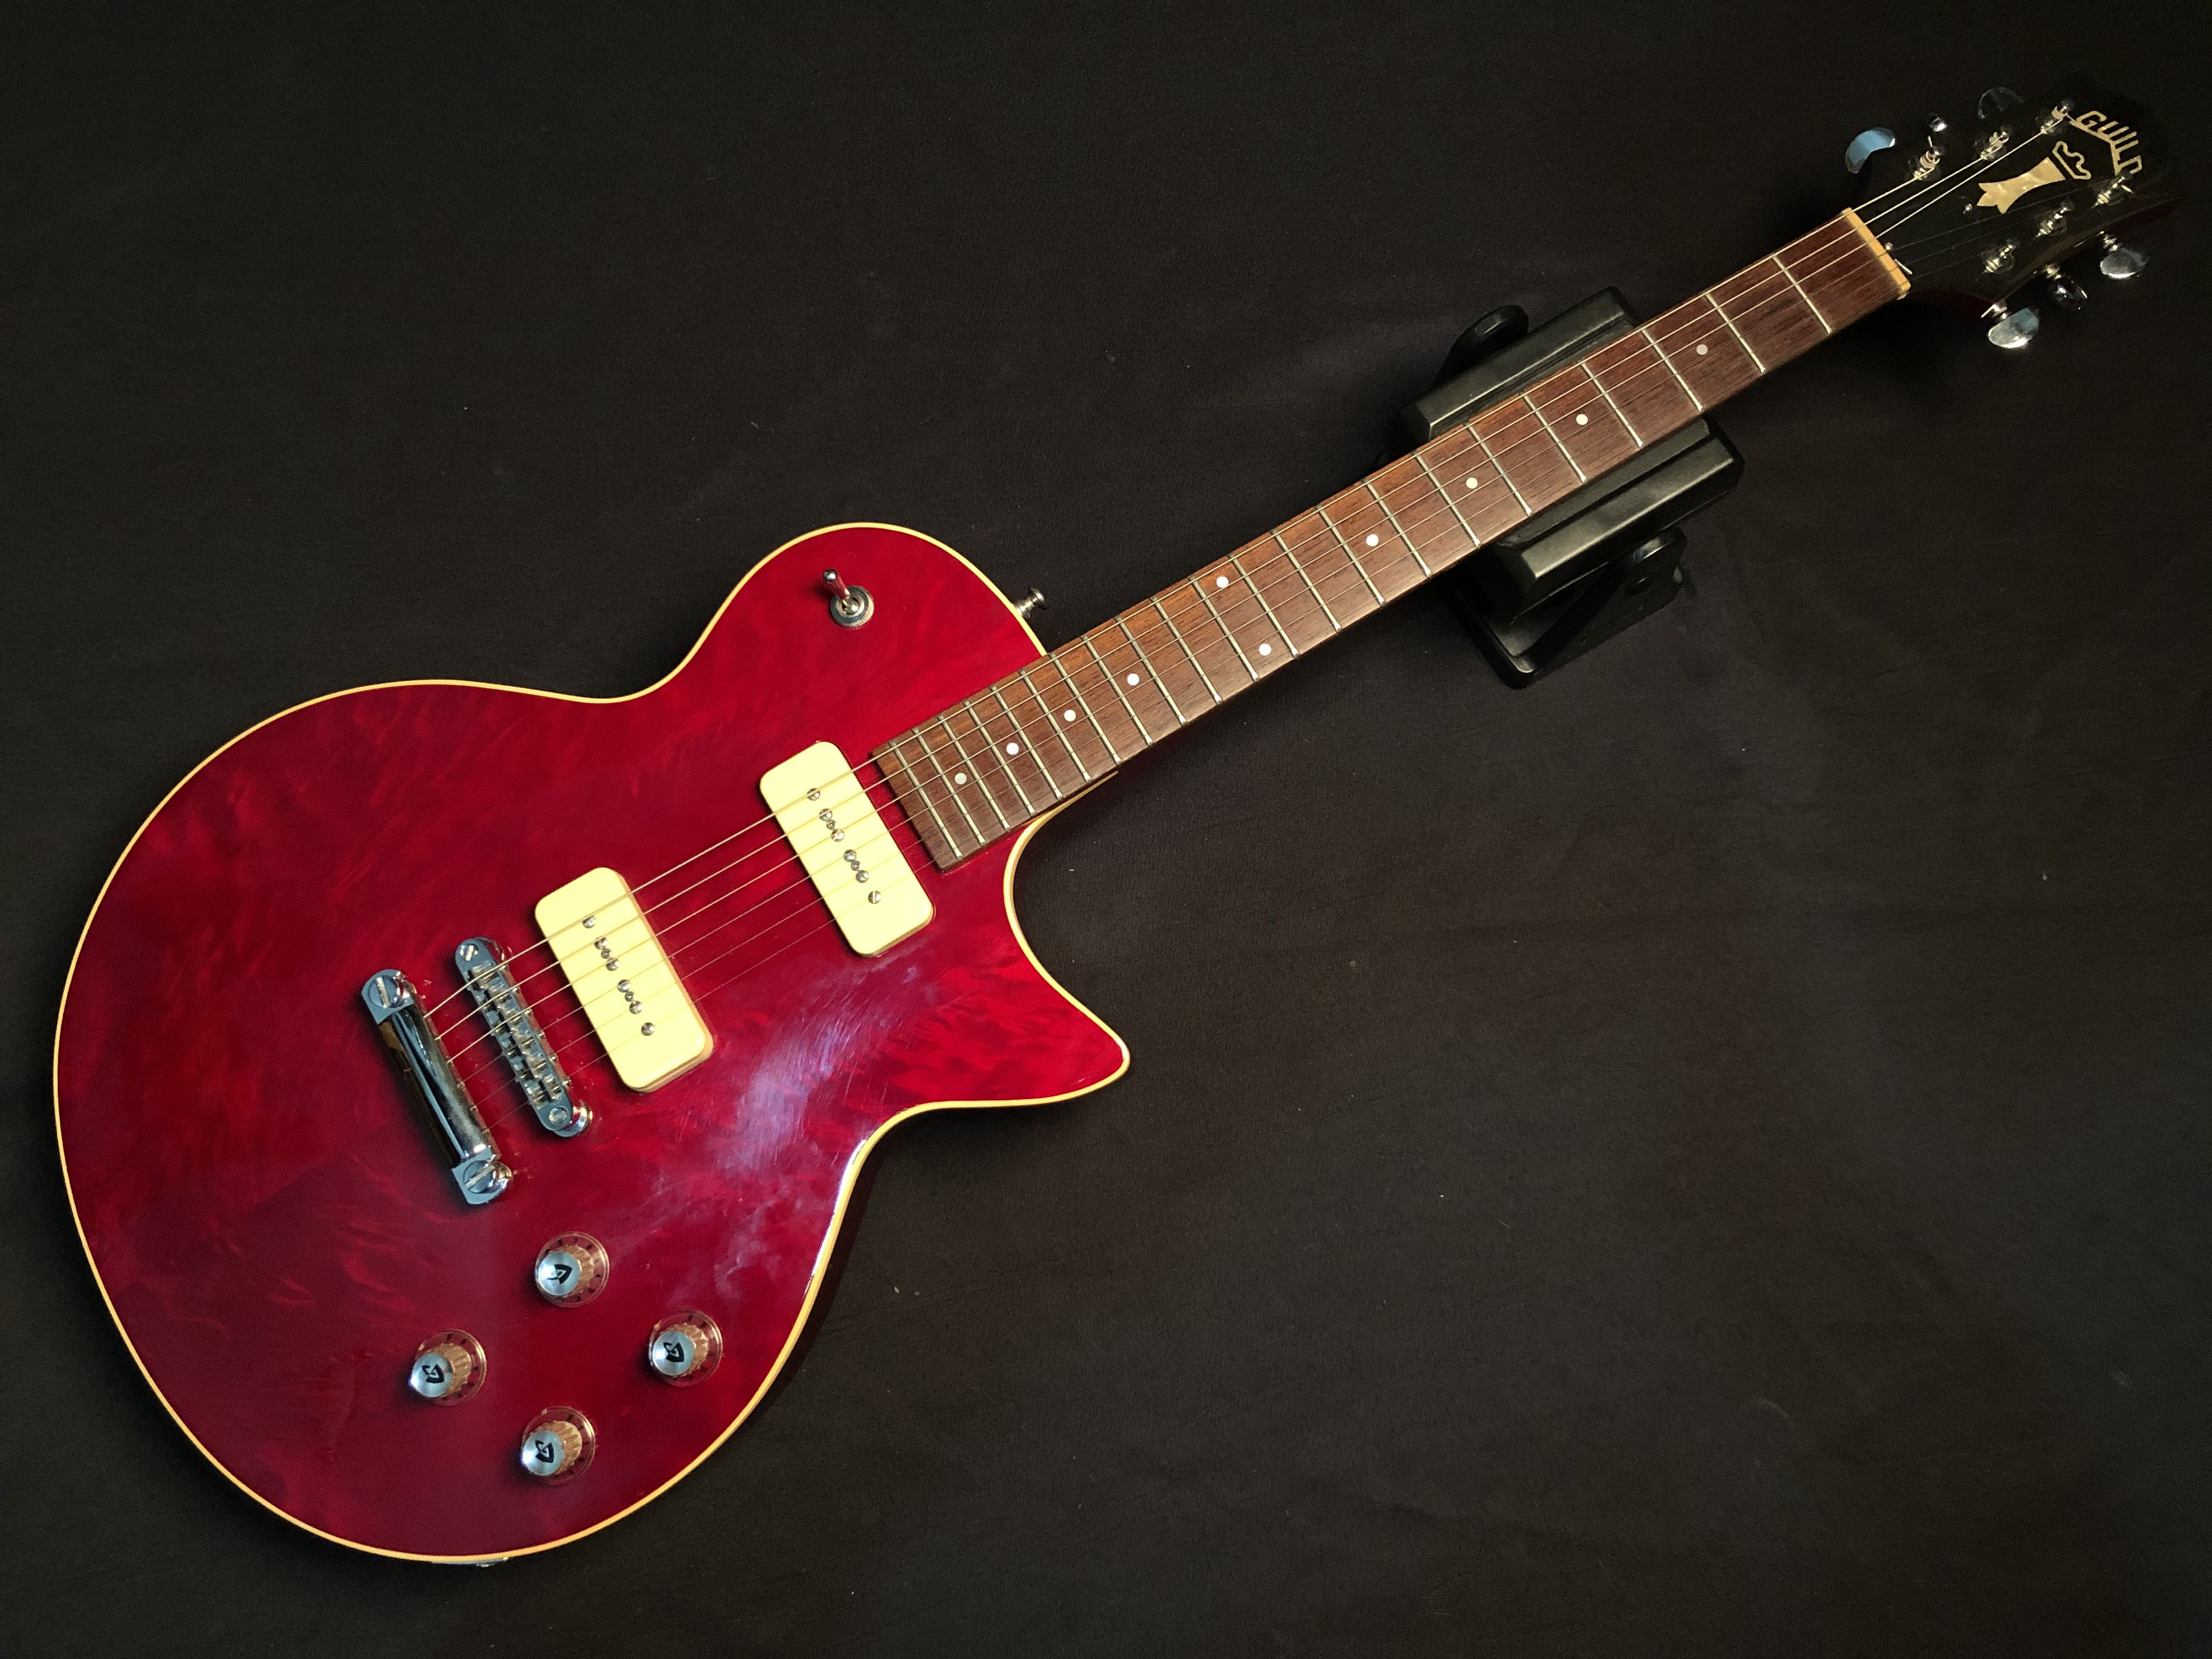 GUILD - BLUES 90 TRANS RED - ELECTRIC GUITAR